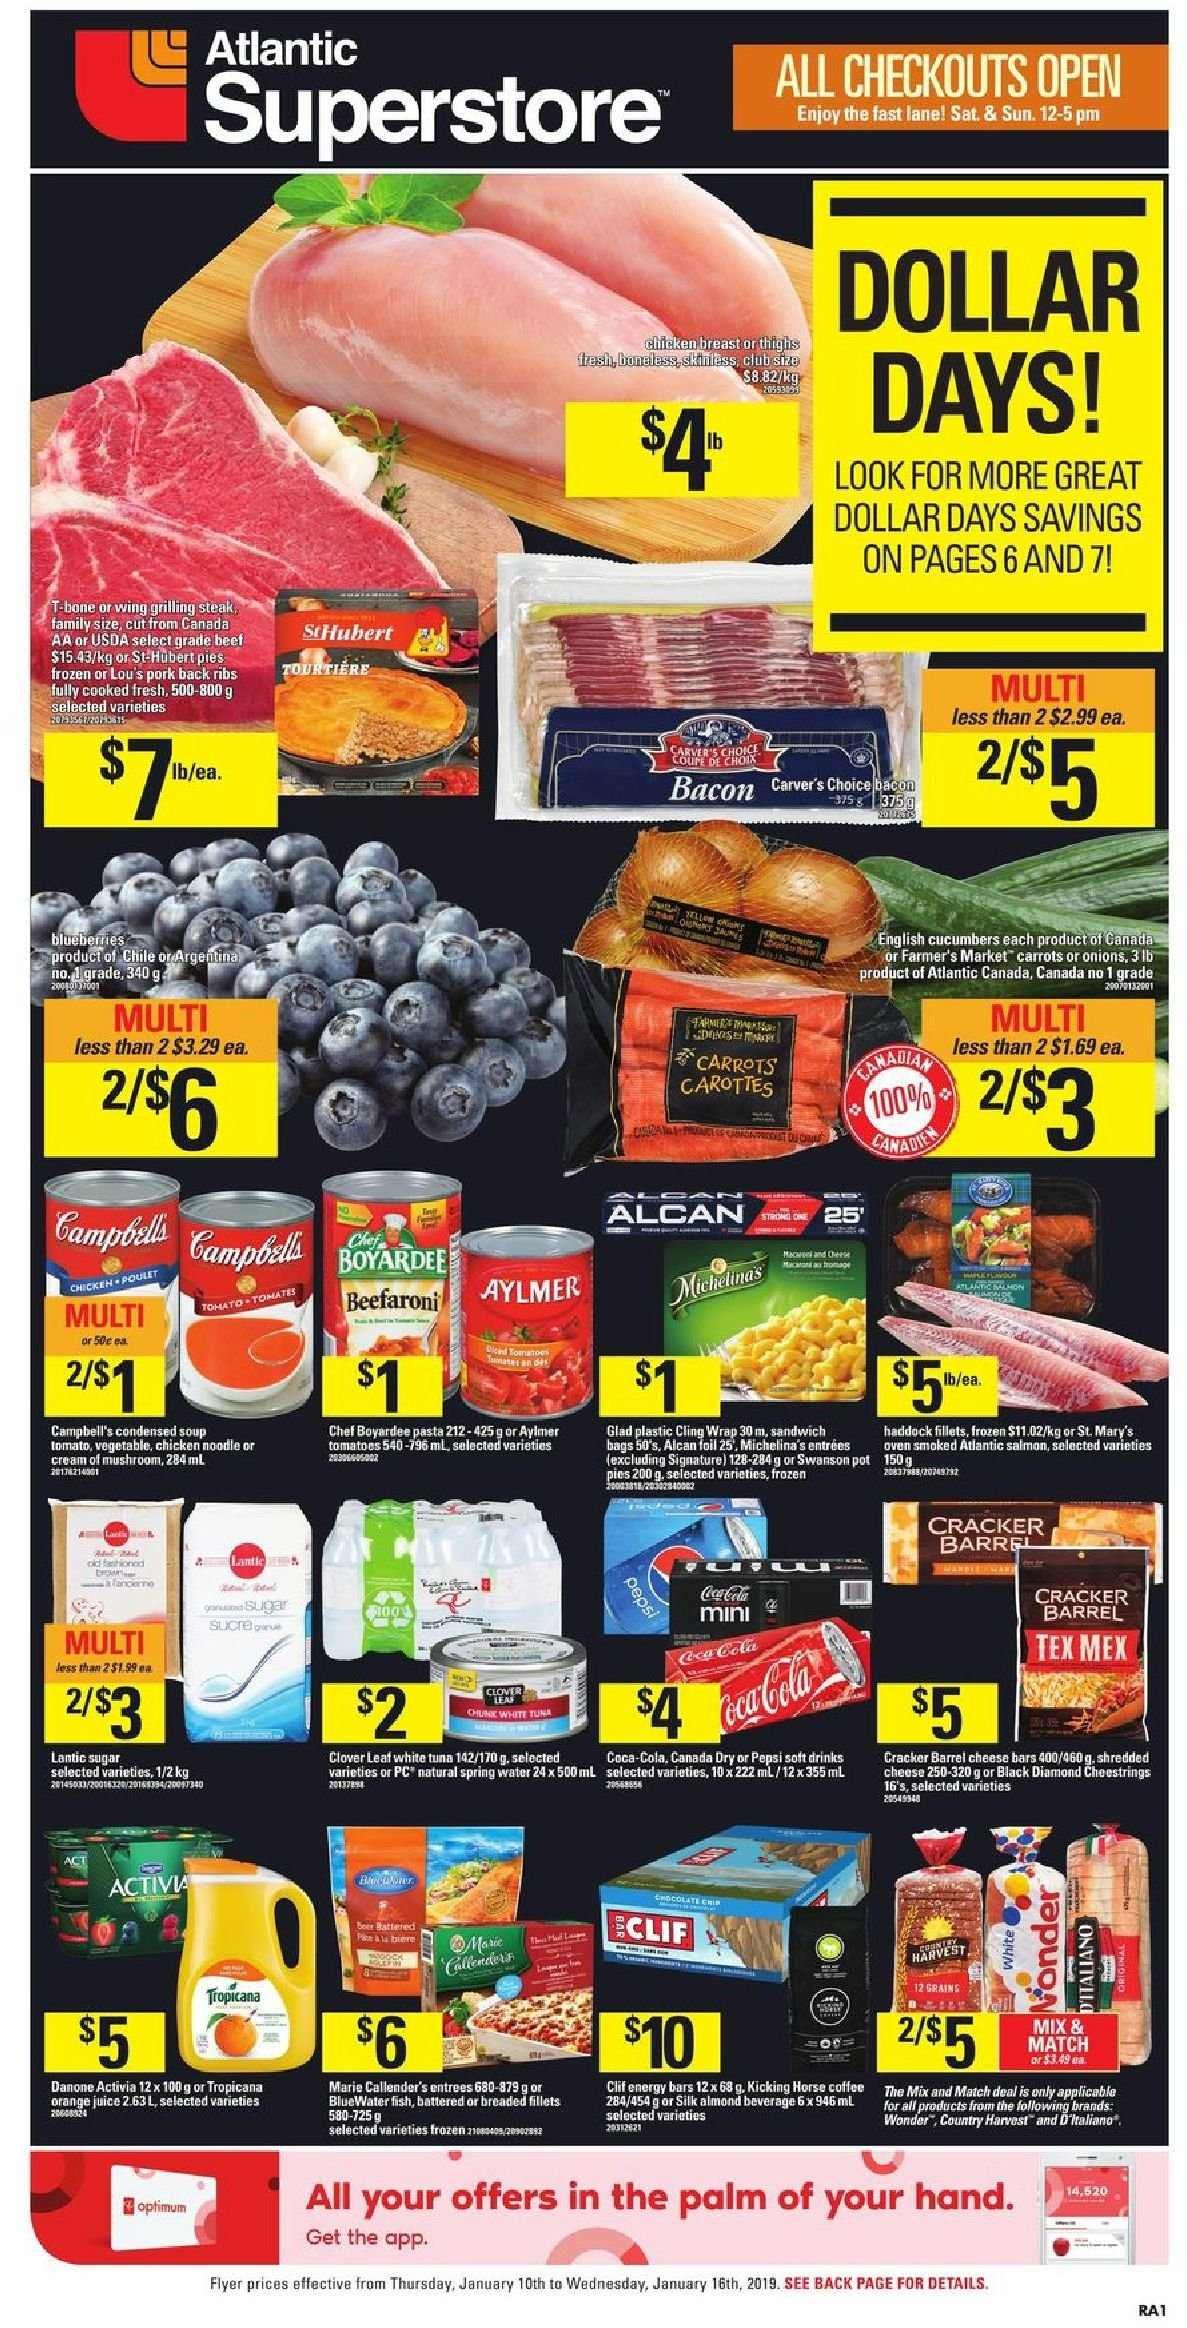 Atlantic Superstore Flyer - January 10, 2019 - January 16, 2019 - Sales products - bacon, bag, beef meat, campbell's, canada dry, carrots, coffee, cream, cucumbers, frozen, shredded cheese, spring water, sugar, tomatoes, tuna, wrap, haddock, pork meat, chicken, pepsi, noodle, oven, onion, orange juice, steak, cheese, juice, sandwich, condensed soup, soup, vegetable, mushroom, pasta, danone, cracker, ribs, activia, orange, tropicana. Page 1.